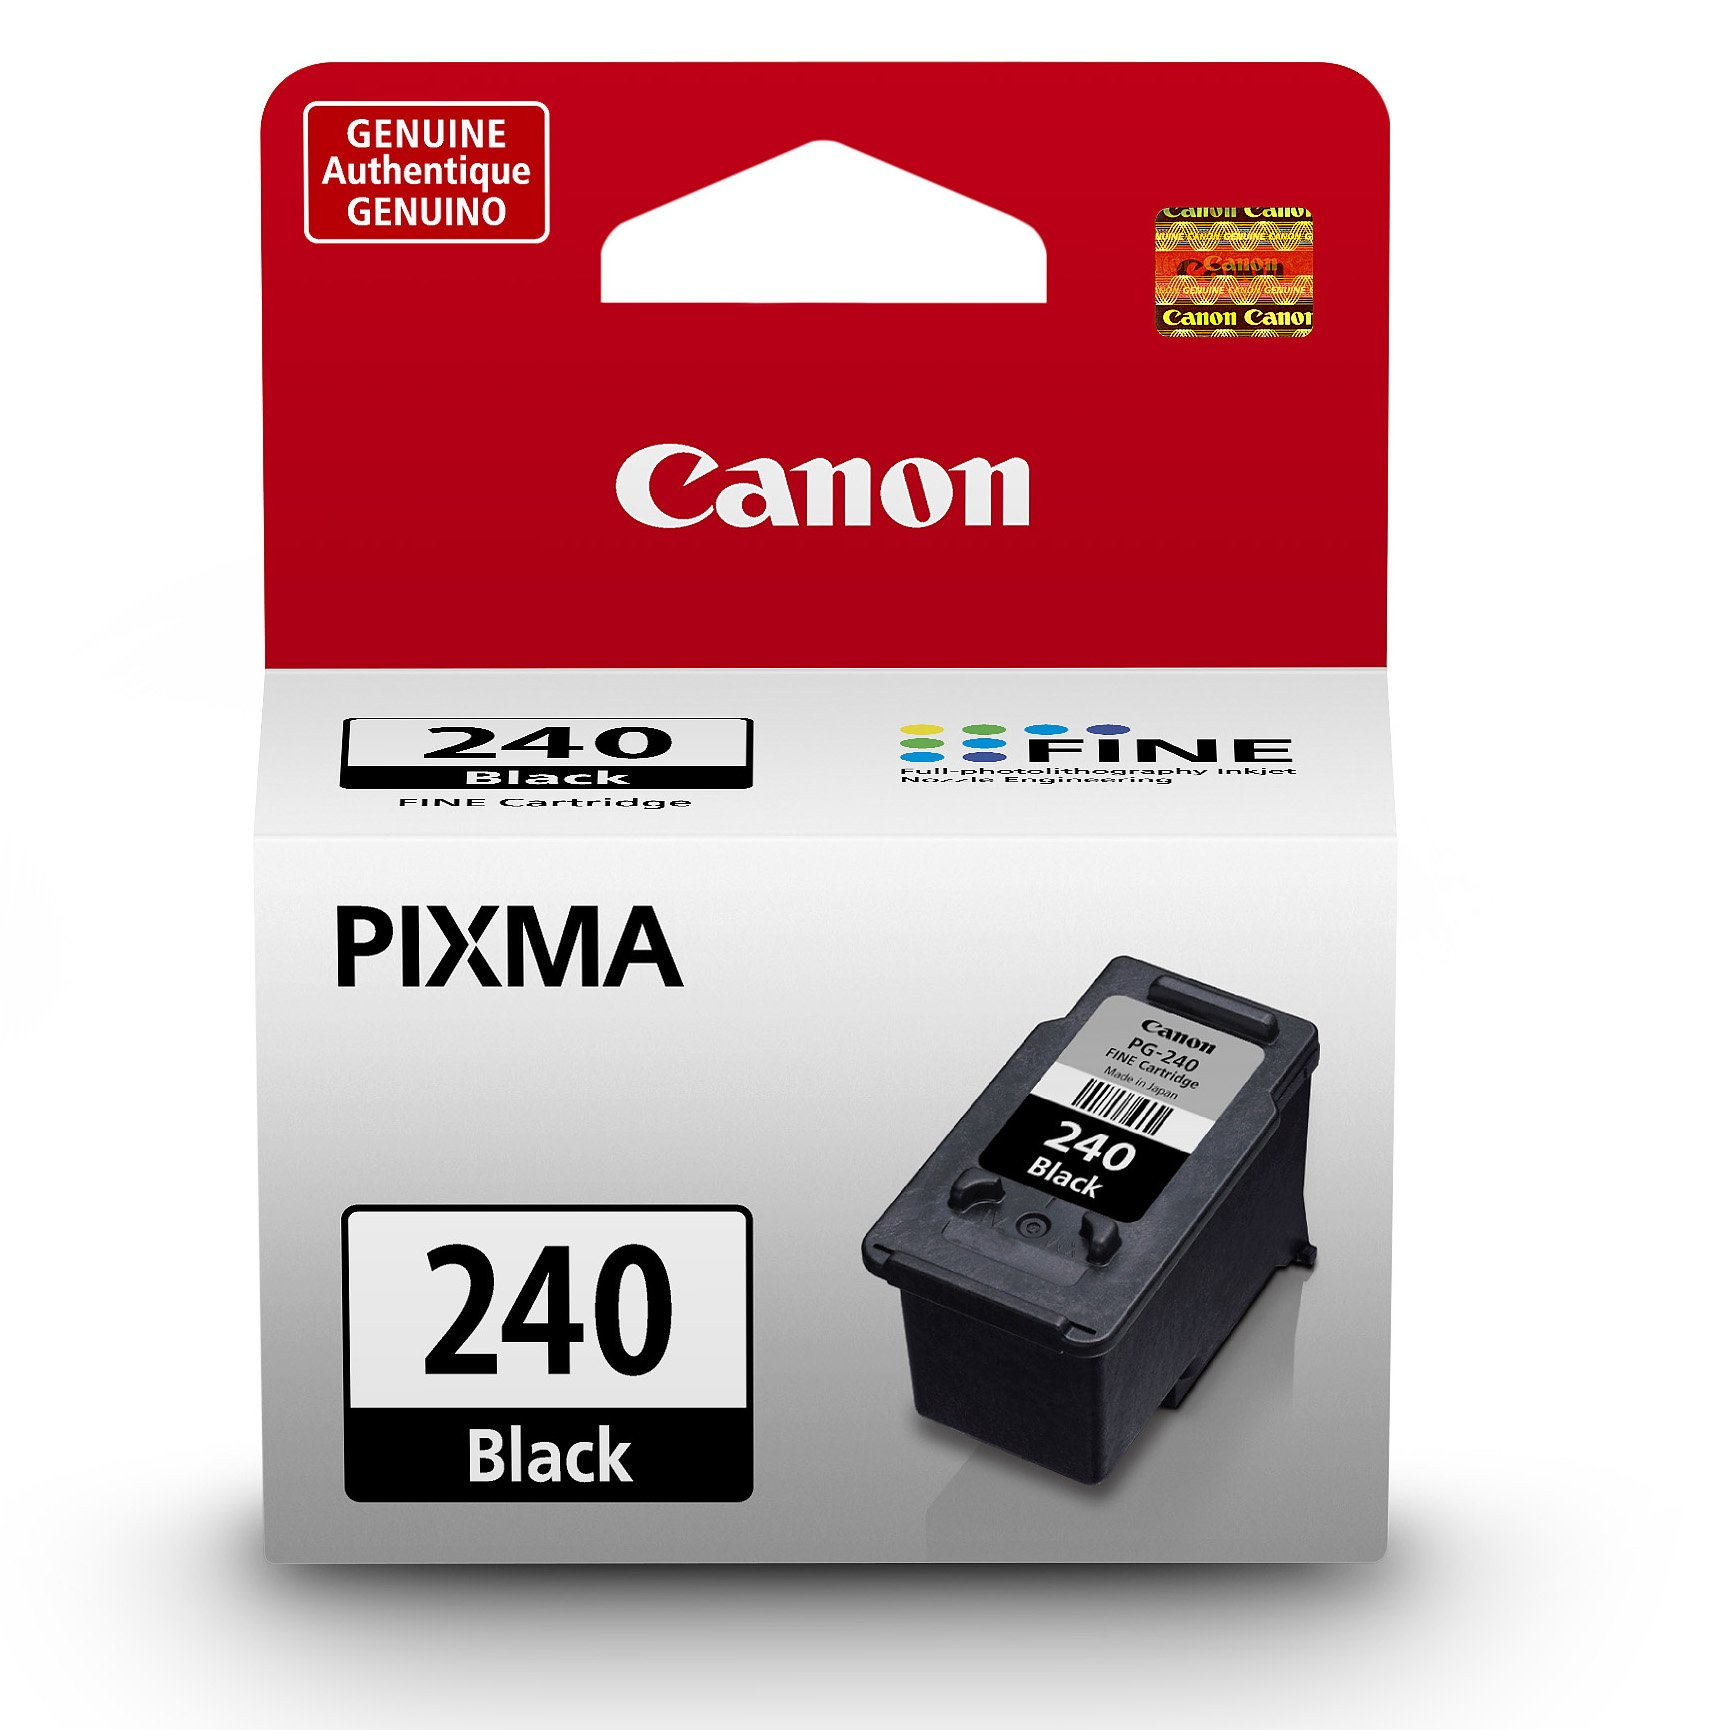 Canon PG-240 Black Ink Cartridge, Compatible to MG3620,MG3520,MG4220,MG3220 and MG2220